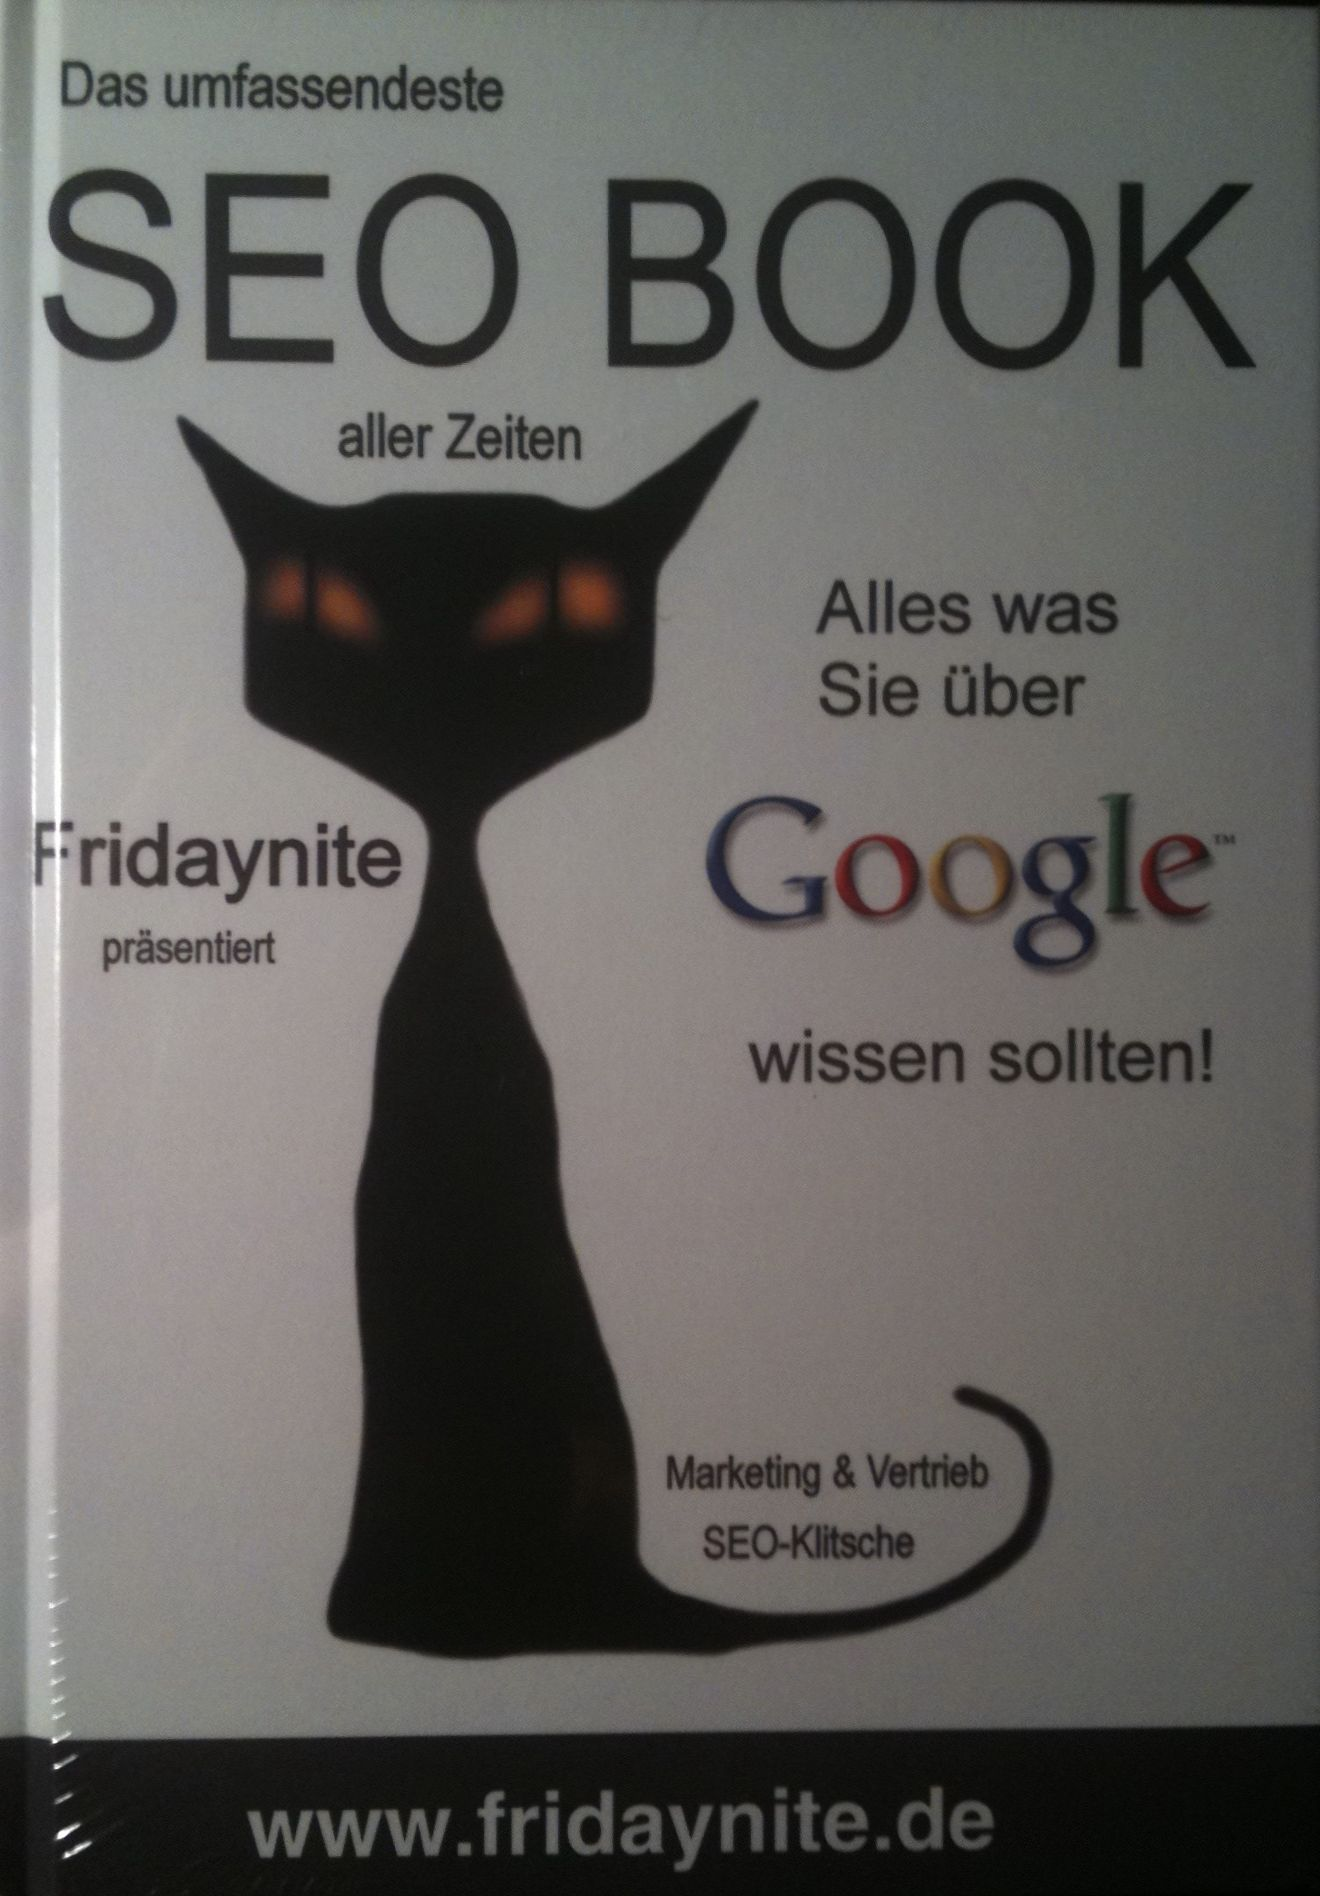 Fridaynite SEO Book